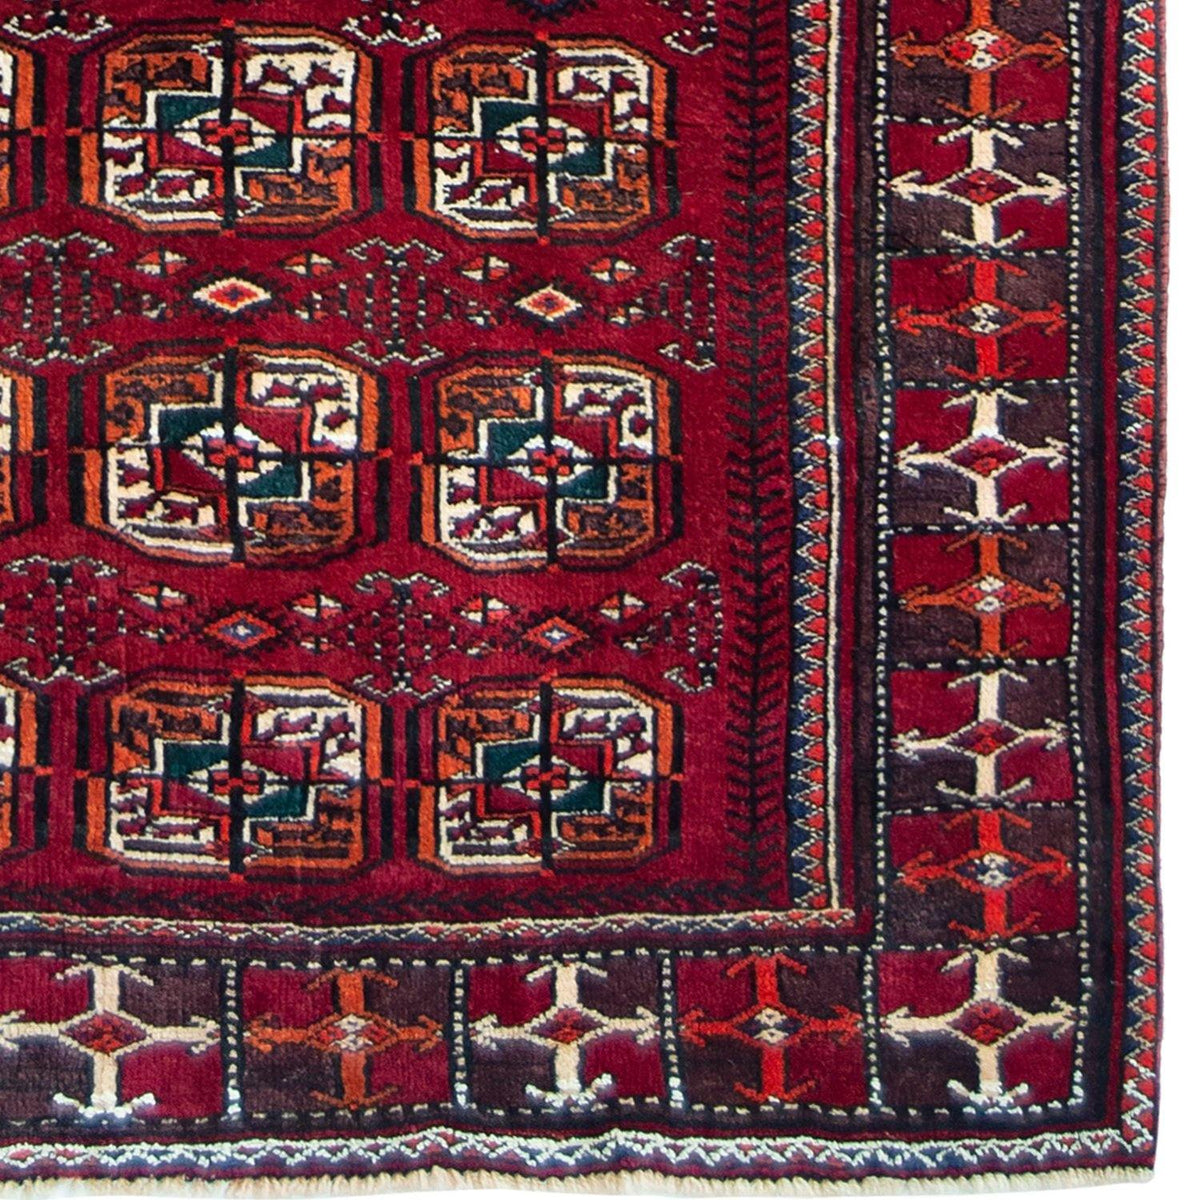 20991 Persian-Rug | House-of-Haghi | NewMarket | Auckland | NZ | Handmade Persian Rugs | Hand Knotted Persian Rugs